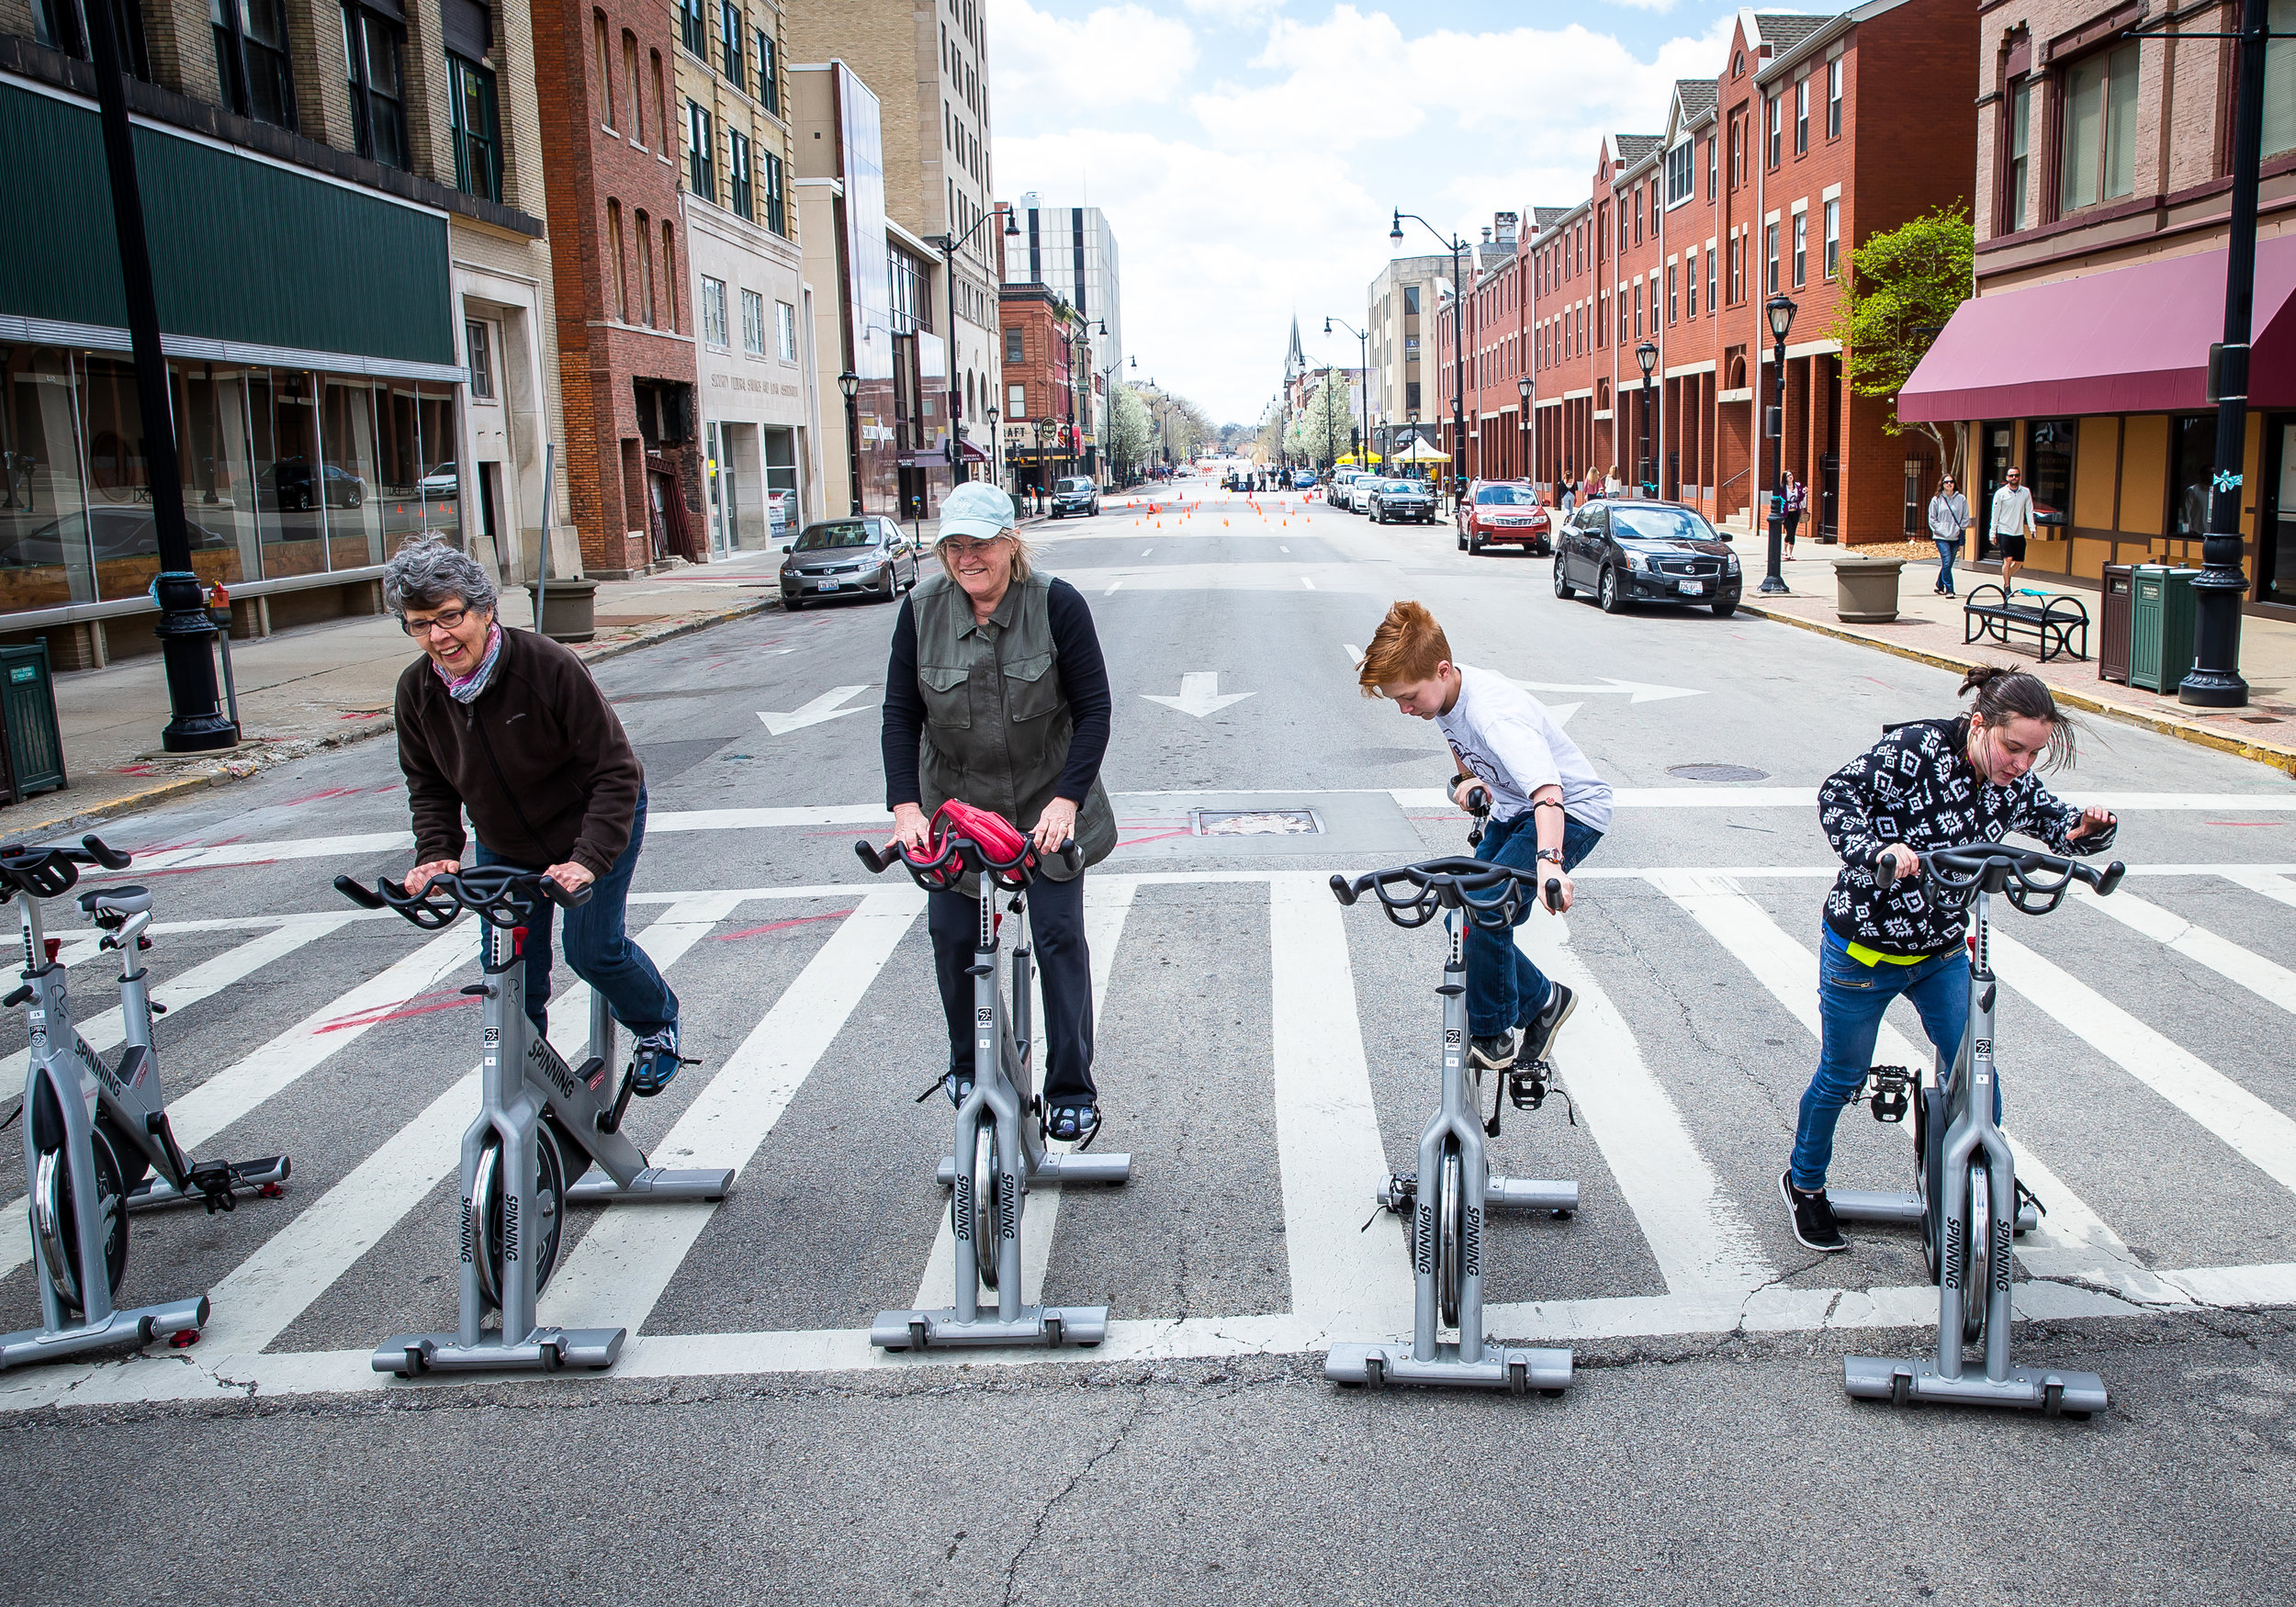 """Mary Thoele, left, Marilyn Cisco, Chandler Marquardt, 13, and Amy Thomas, 16, right, try out spin bikes during a demonstration of the YMCA spin class in the middle of a closed down Monroe Street during the Downtown Open Streets event, Saturday, April 28, 2018, in Springfield, Ill. Downtown Open Streets was an event put on by Downtown Springfield, Inc. and sponsored by Memorial Health System, and created a """"paved park"""" by temporarily closing certain downtown streets and holding demonstrations promoting recreation and healthier living. [Justin L. Fowler/The State Journal-Register]"""